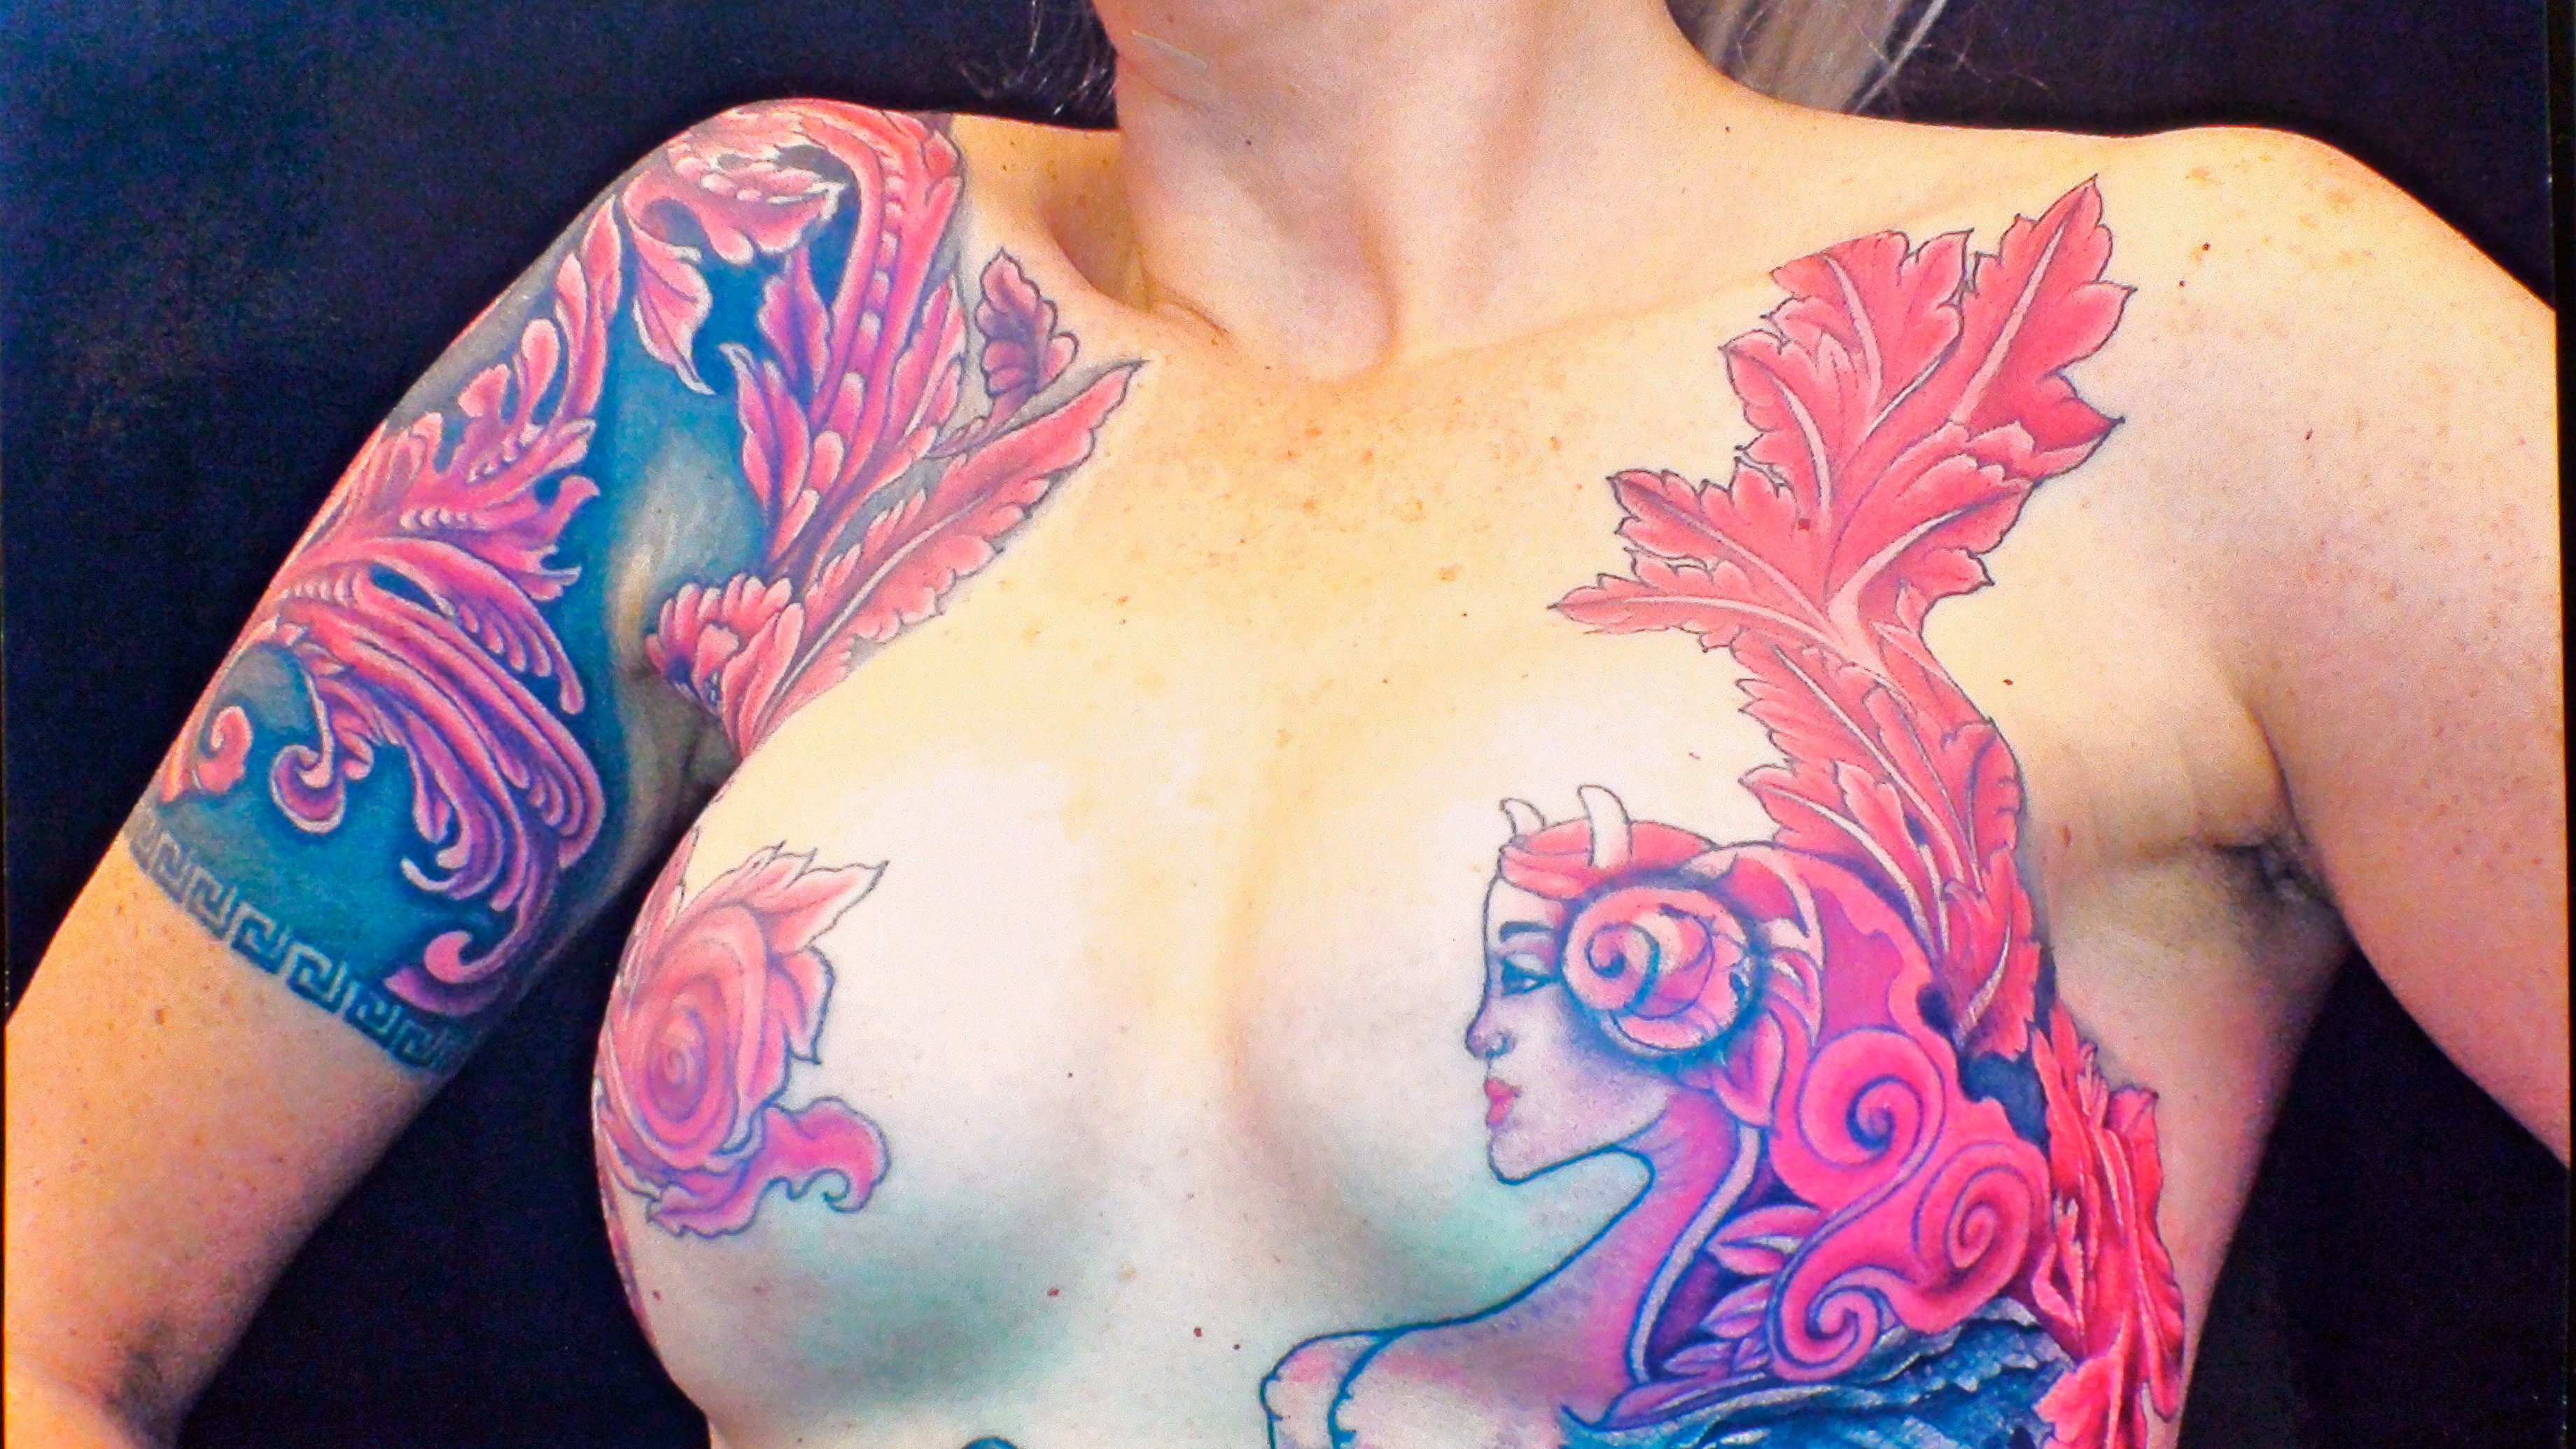 Top wix templates images for pinterest tattoos for Breast reconstruction tattoos